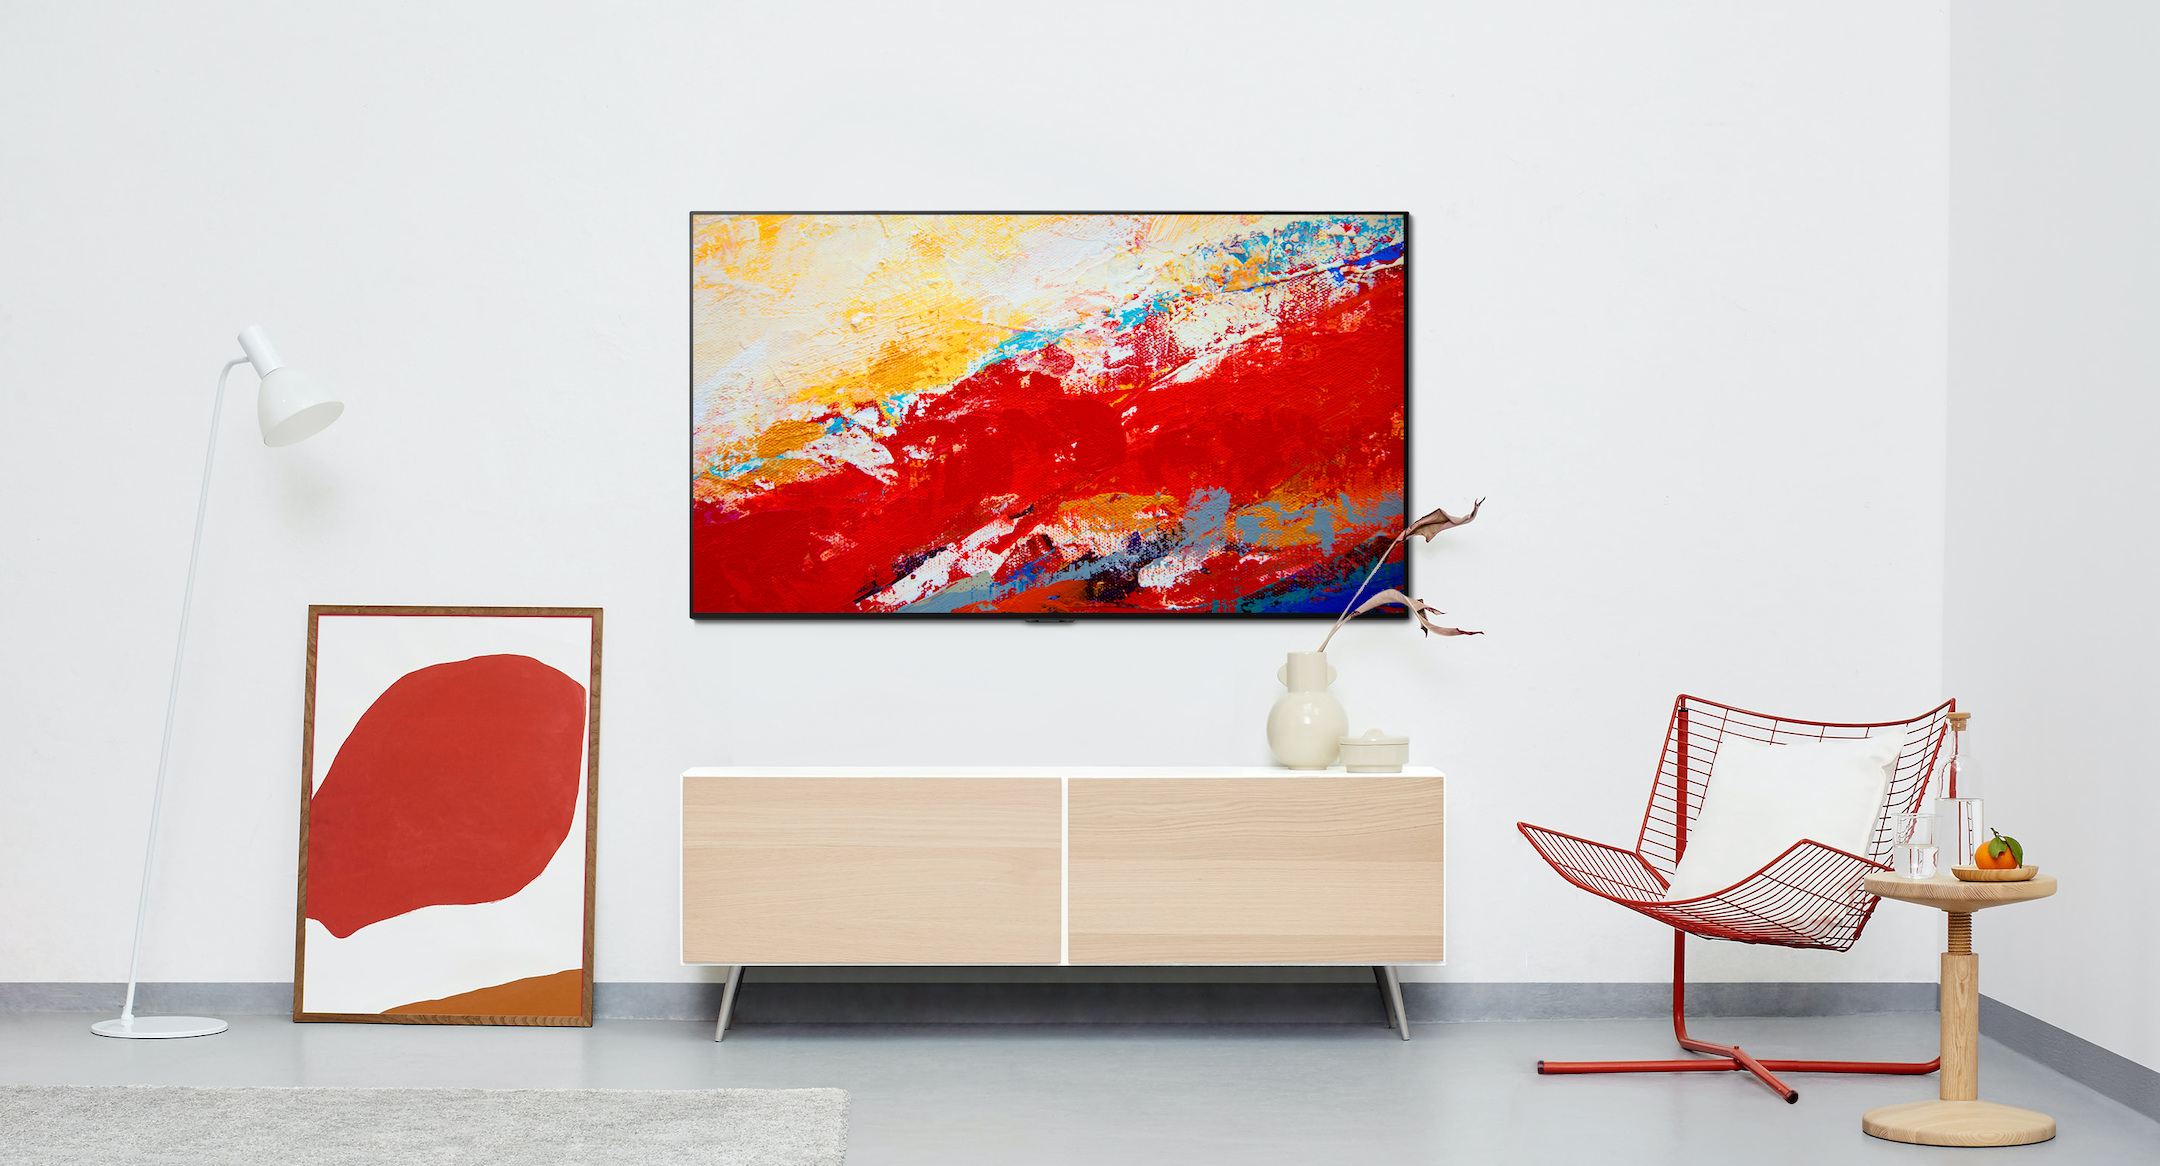 Samsung Frame vs LG Gallery Series TV: which is better?